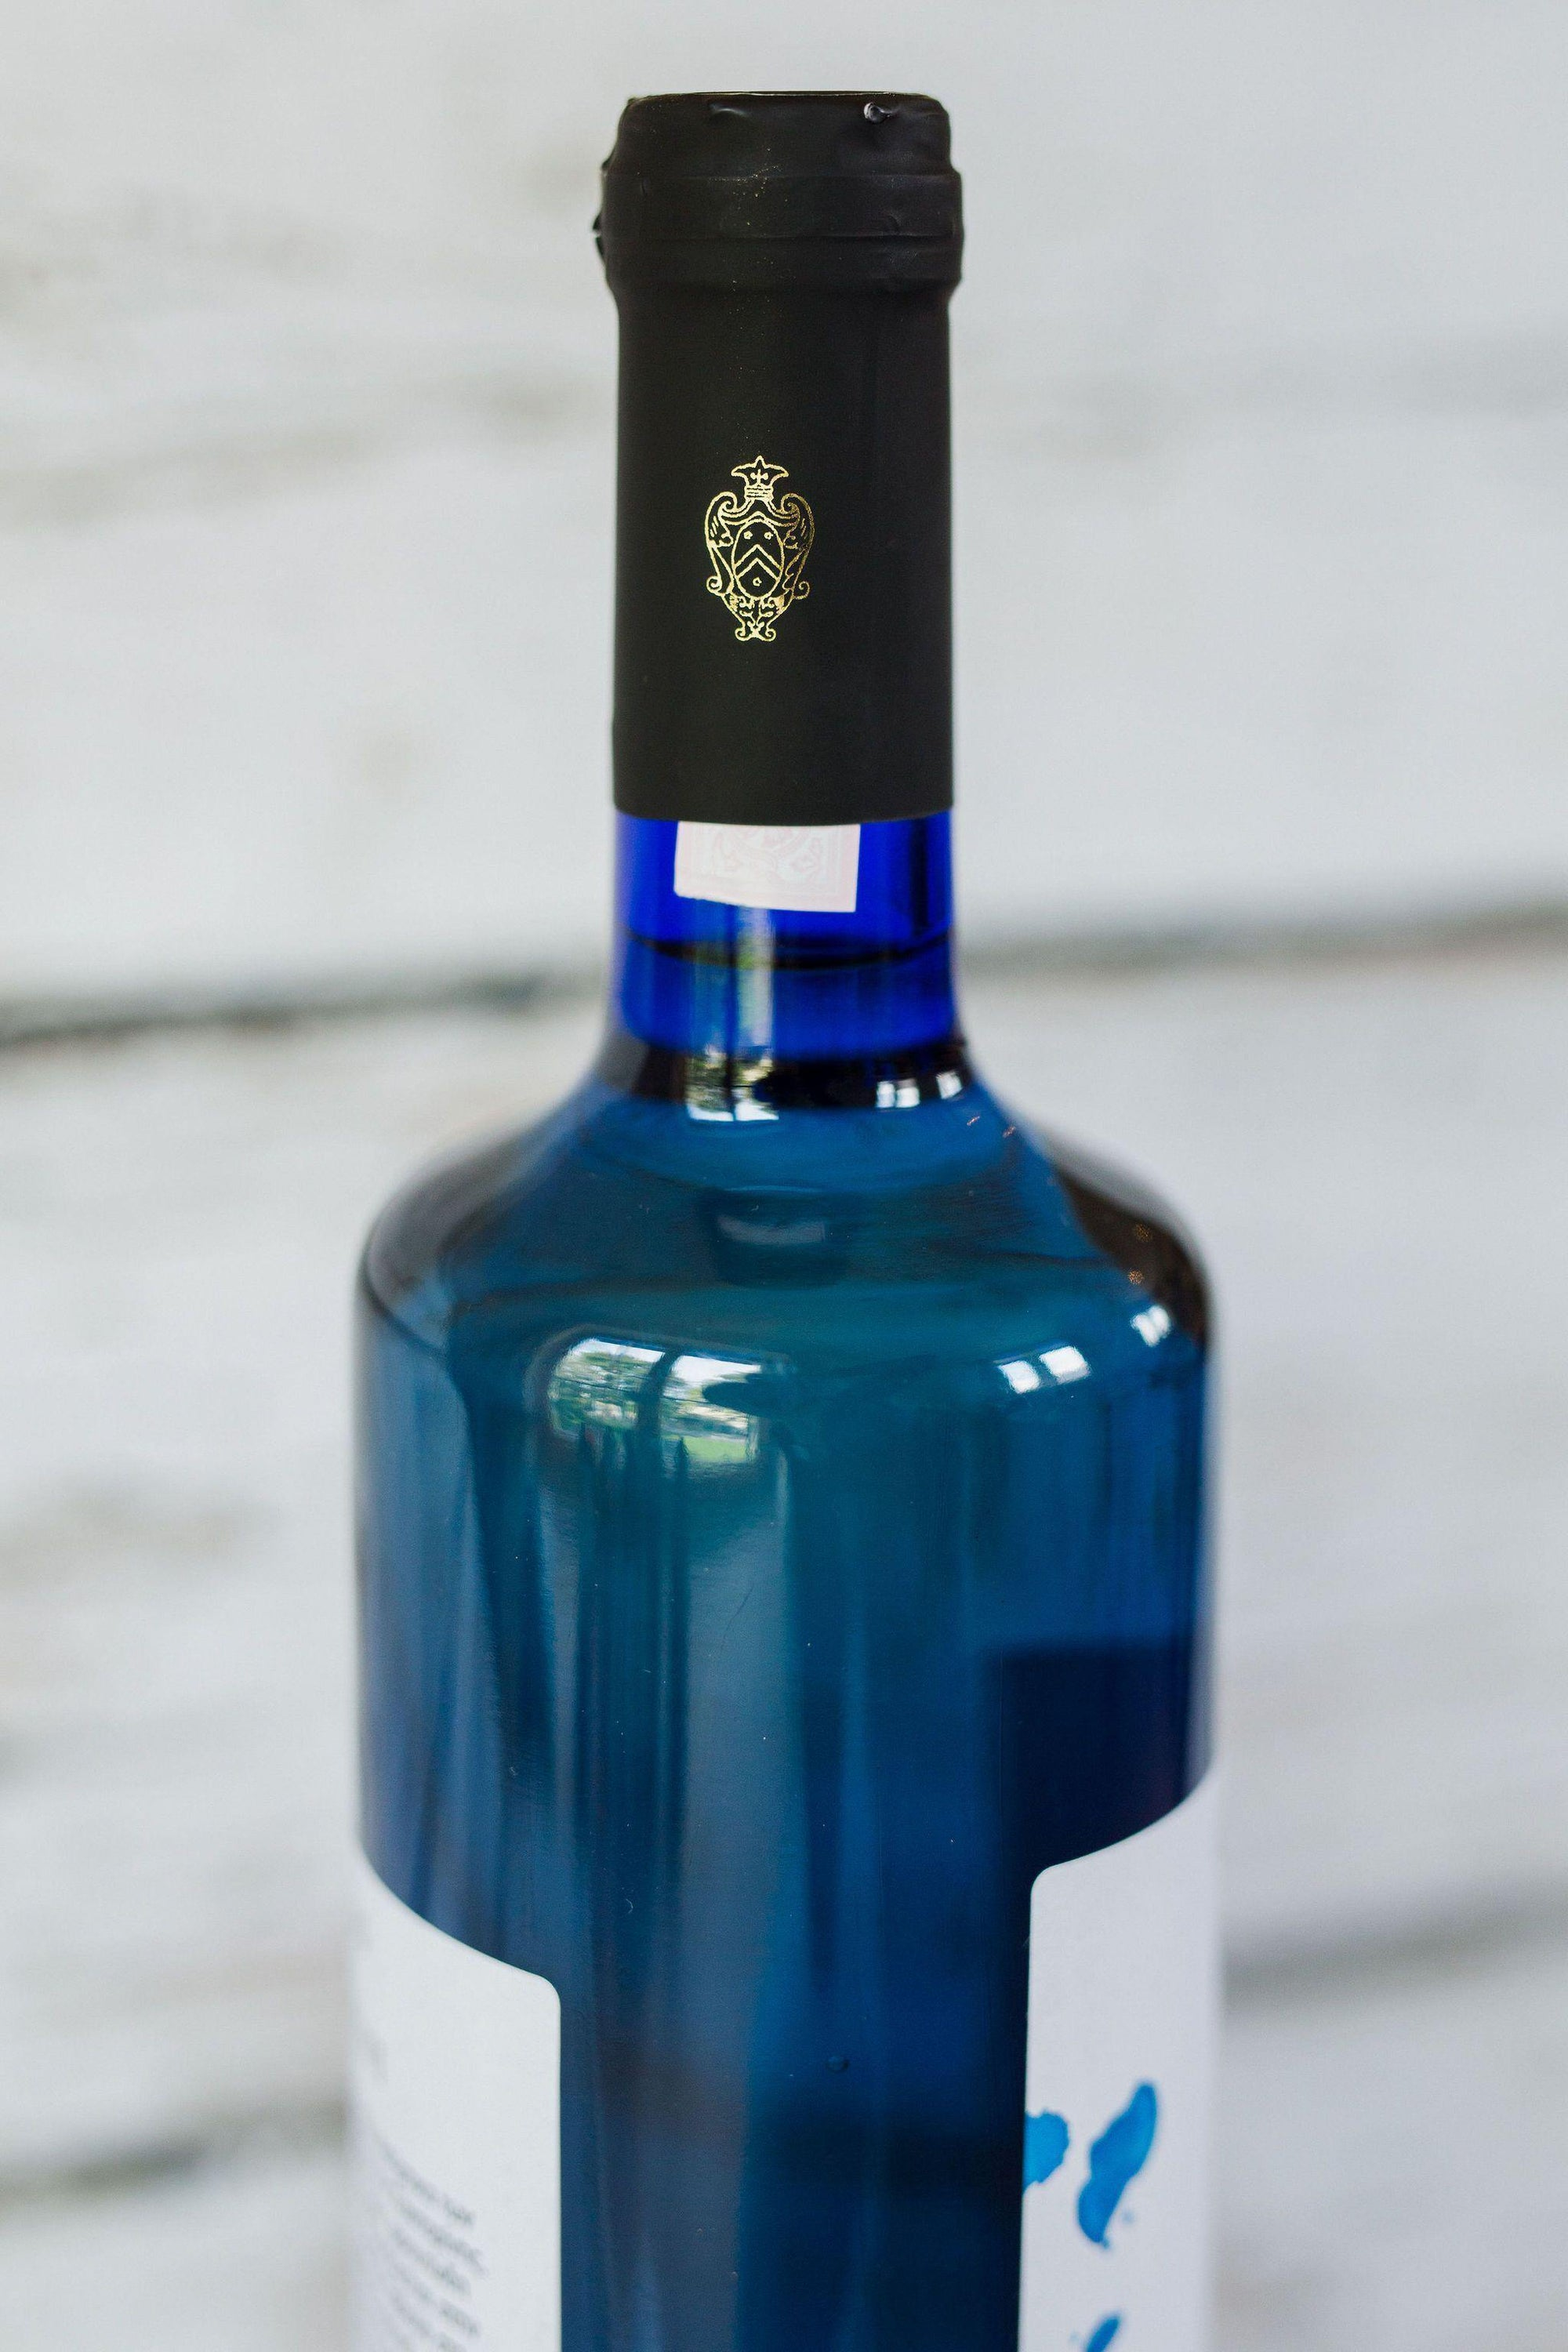 750ml blue wine bottle of Santorini white wine from Gavalas with front label and cork with black foil label